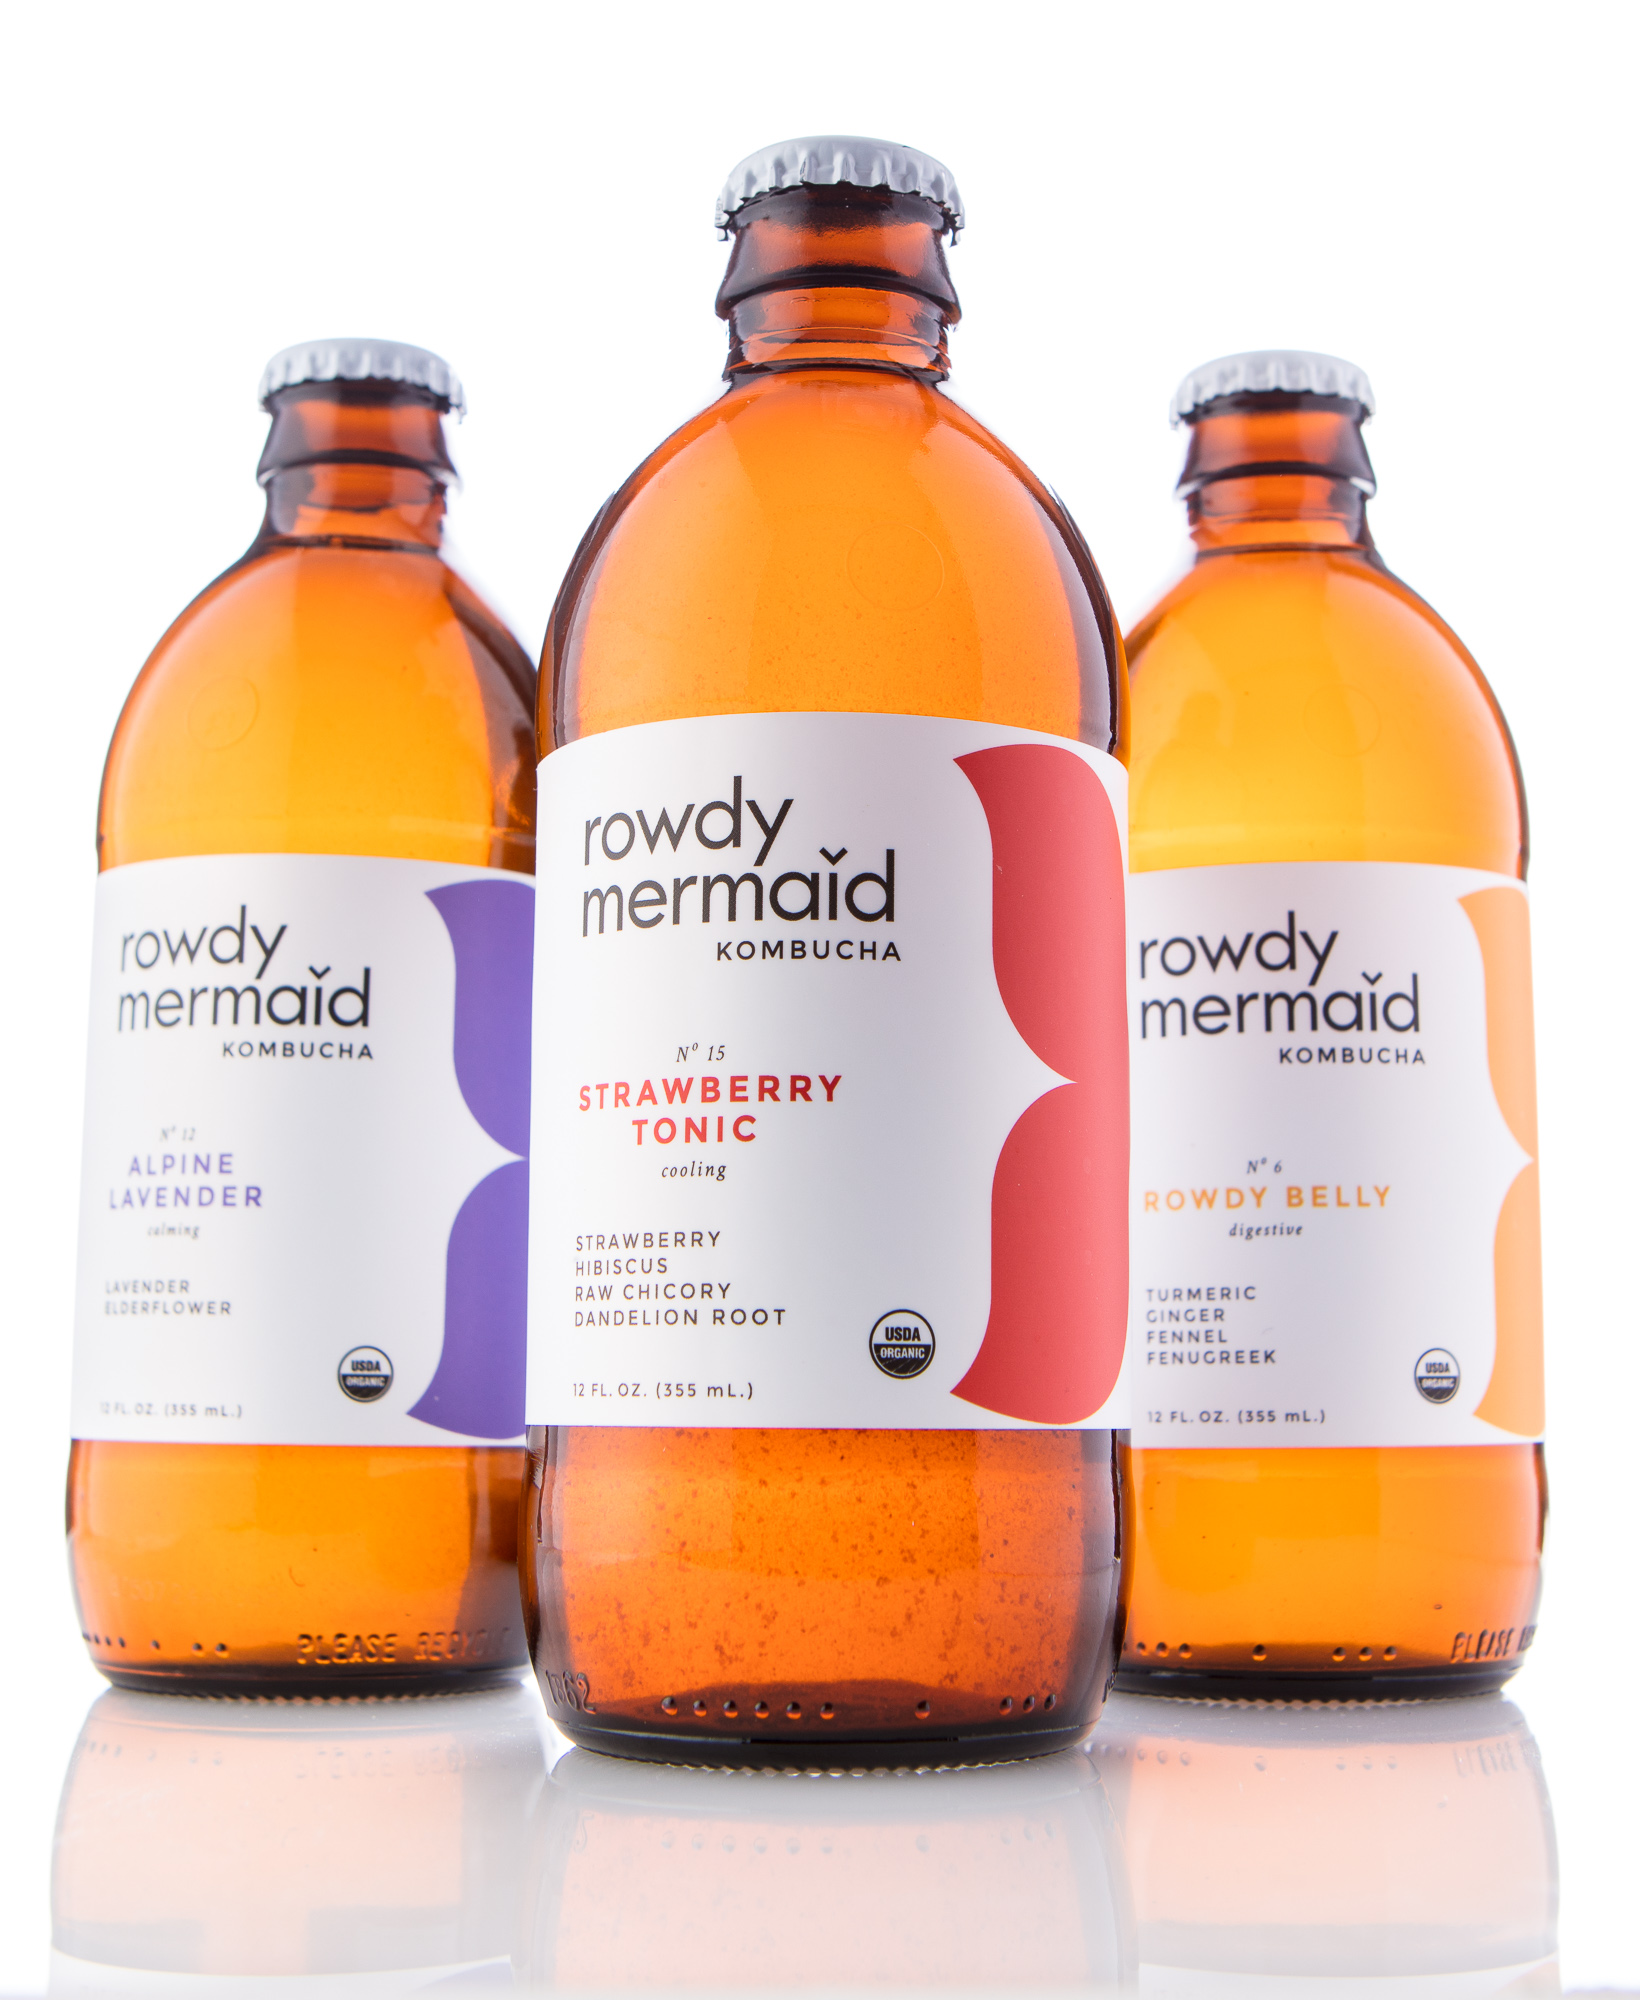 Rowdy Mermaid Kombucha beverage product photo on white background